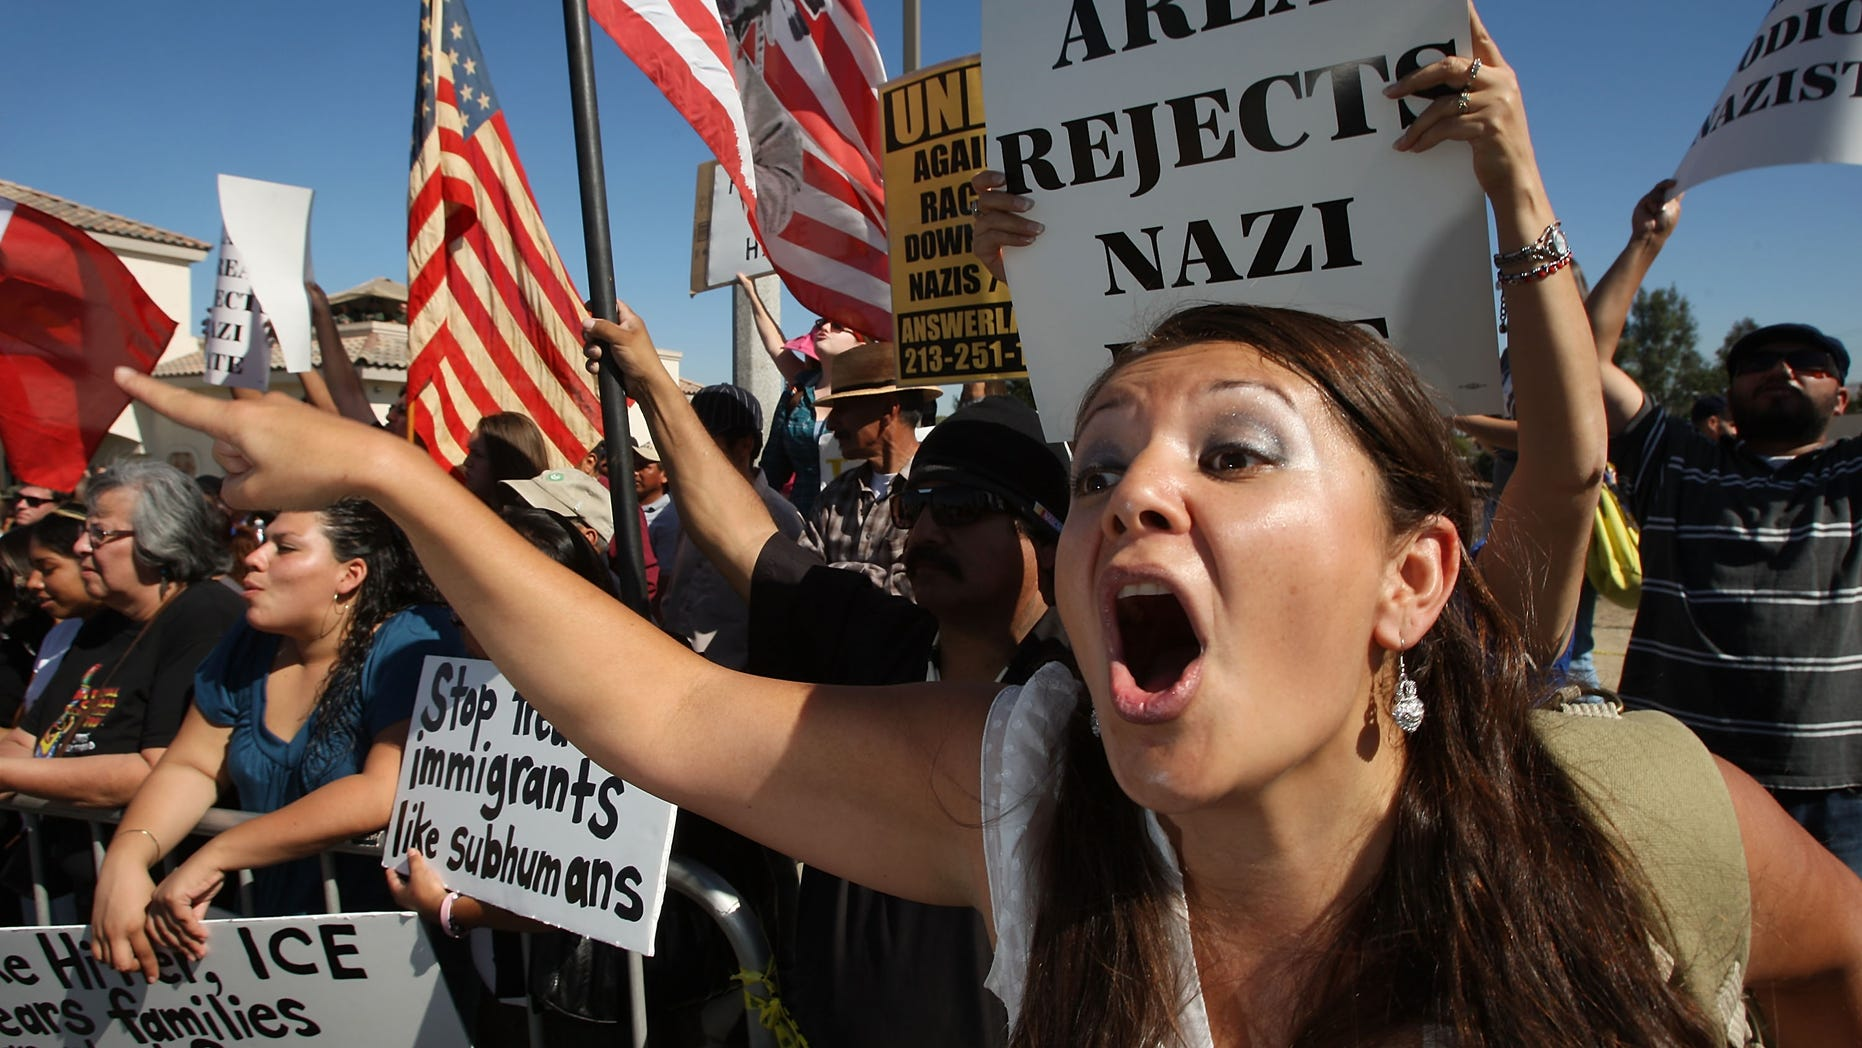 RIVERSIDE, CA - OCTOBER 24:  Counter-protester Erika Paz yells at members of the white supremacist group, the National Socialist Movement, during the NSMÕs anti-illegal immigration rally near a Home Depot store on October 24, 2009 in Riverside, California. It is the second such demonstration in Riverside by the Detroit-based Neo-Nazi group in the past month. The last rally was soon broken up by police after clashes with counter-protesters.   (Photo by David McNew/Getty Images)